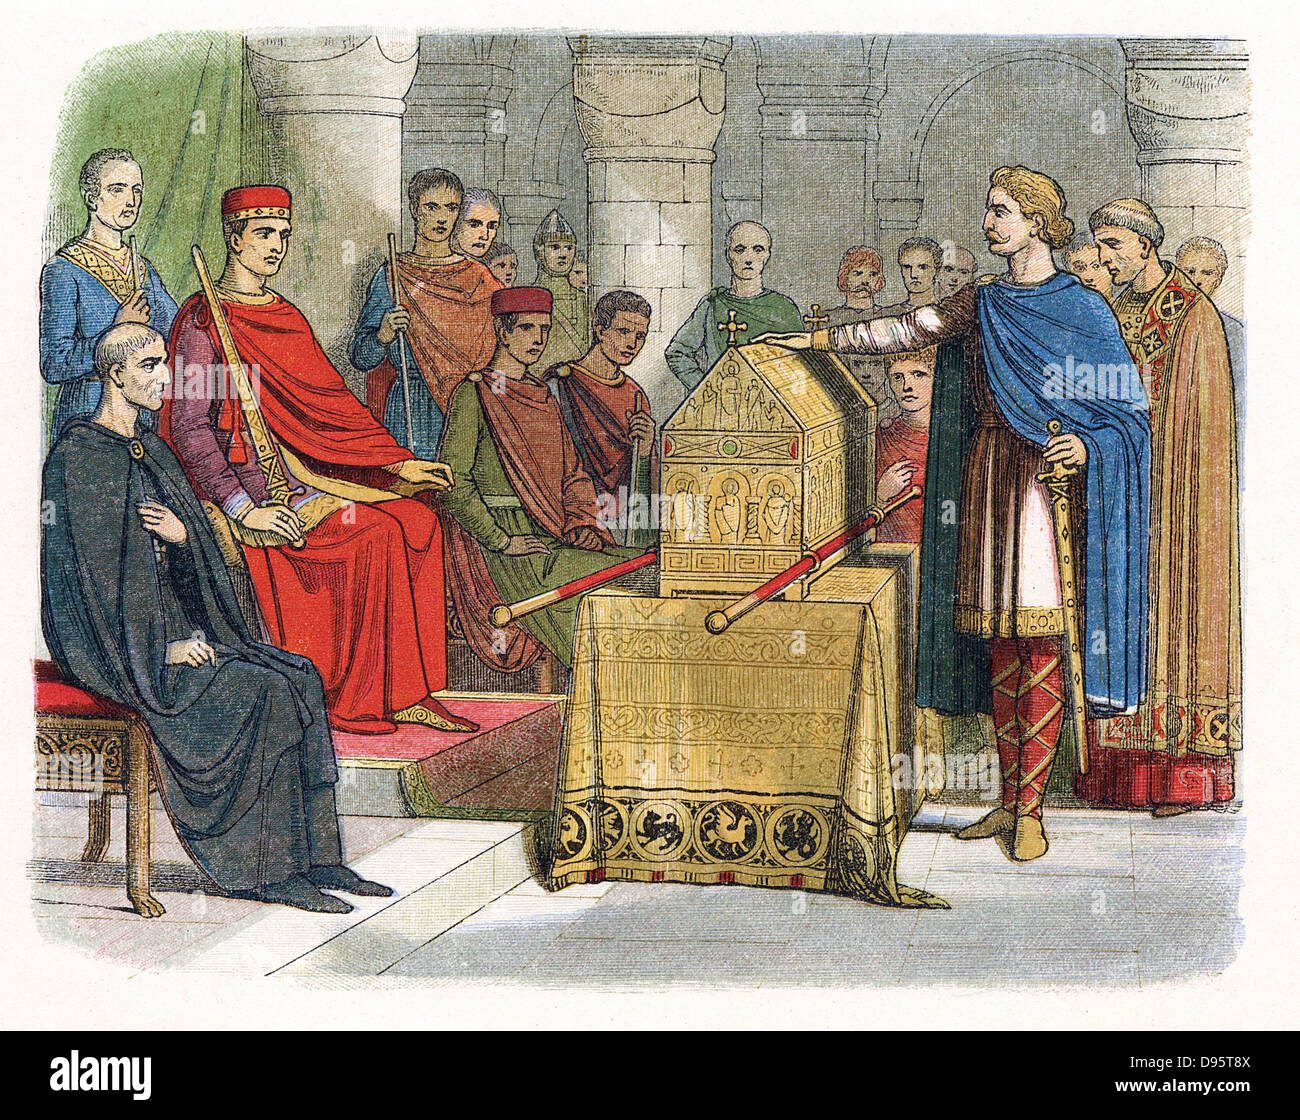 Harold II (c1020-1066) last Anglo-Saxon king of England (1066): Harold  swearing an oath on sacred relics (c1064) before William